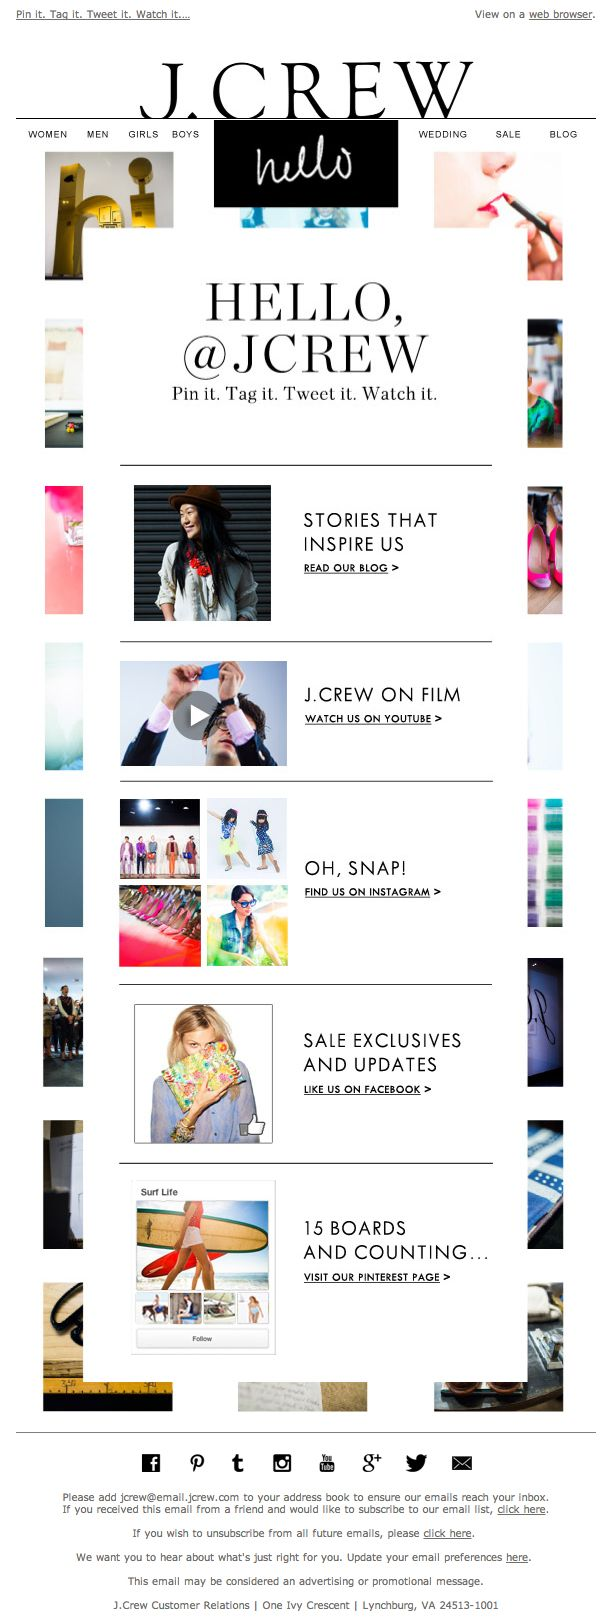 J. Crew welcome email Dec 2013 (Email #4)